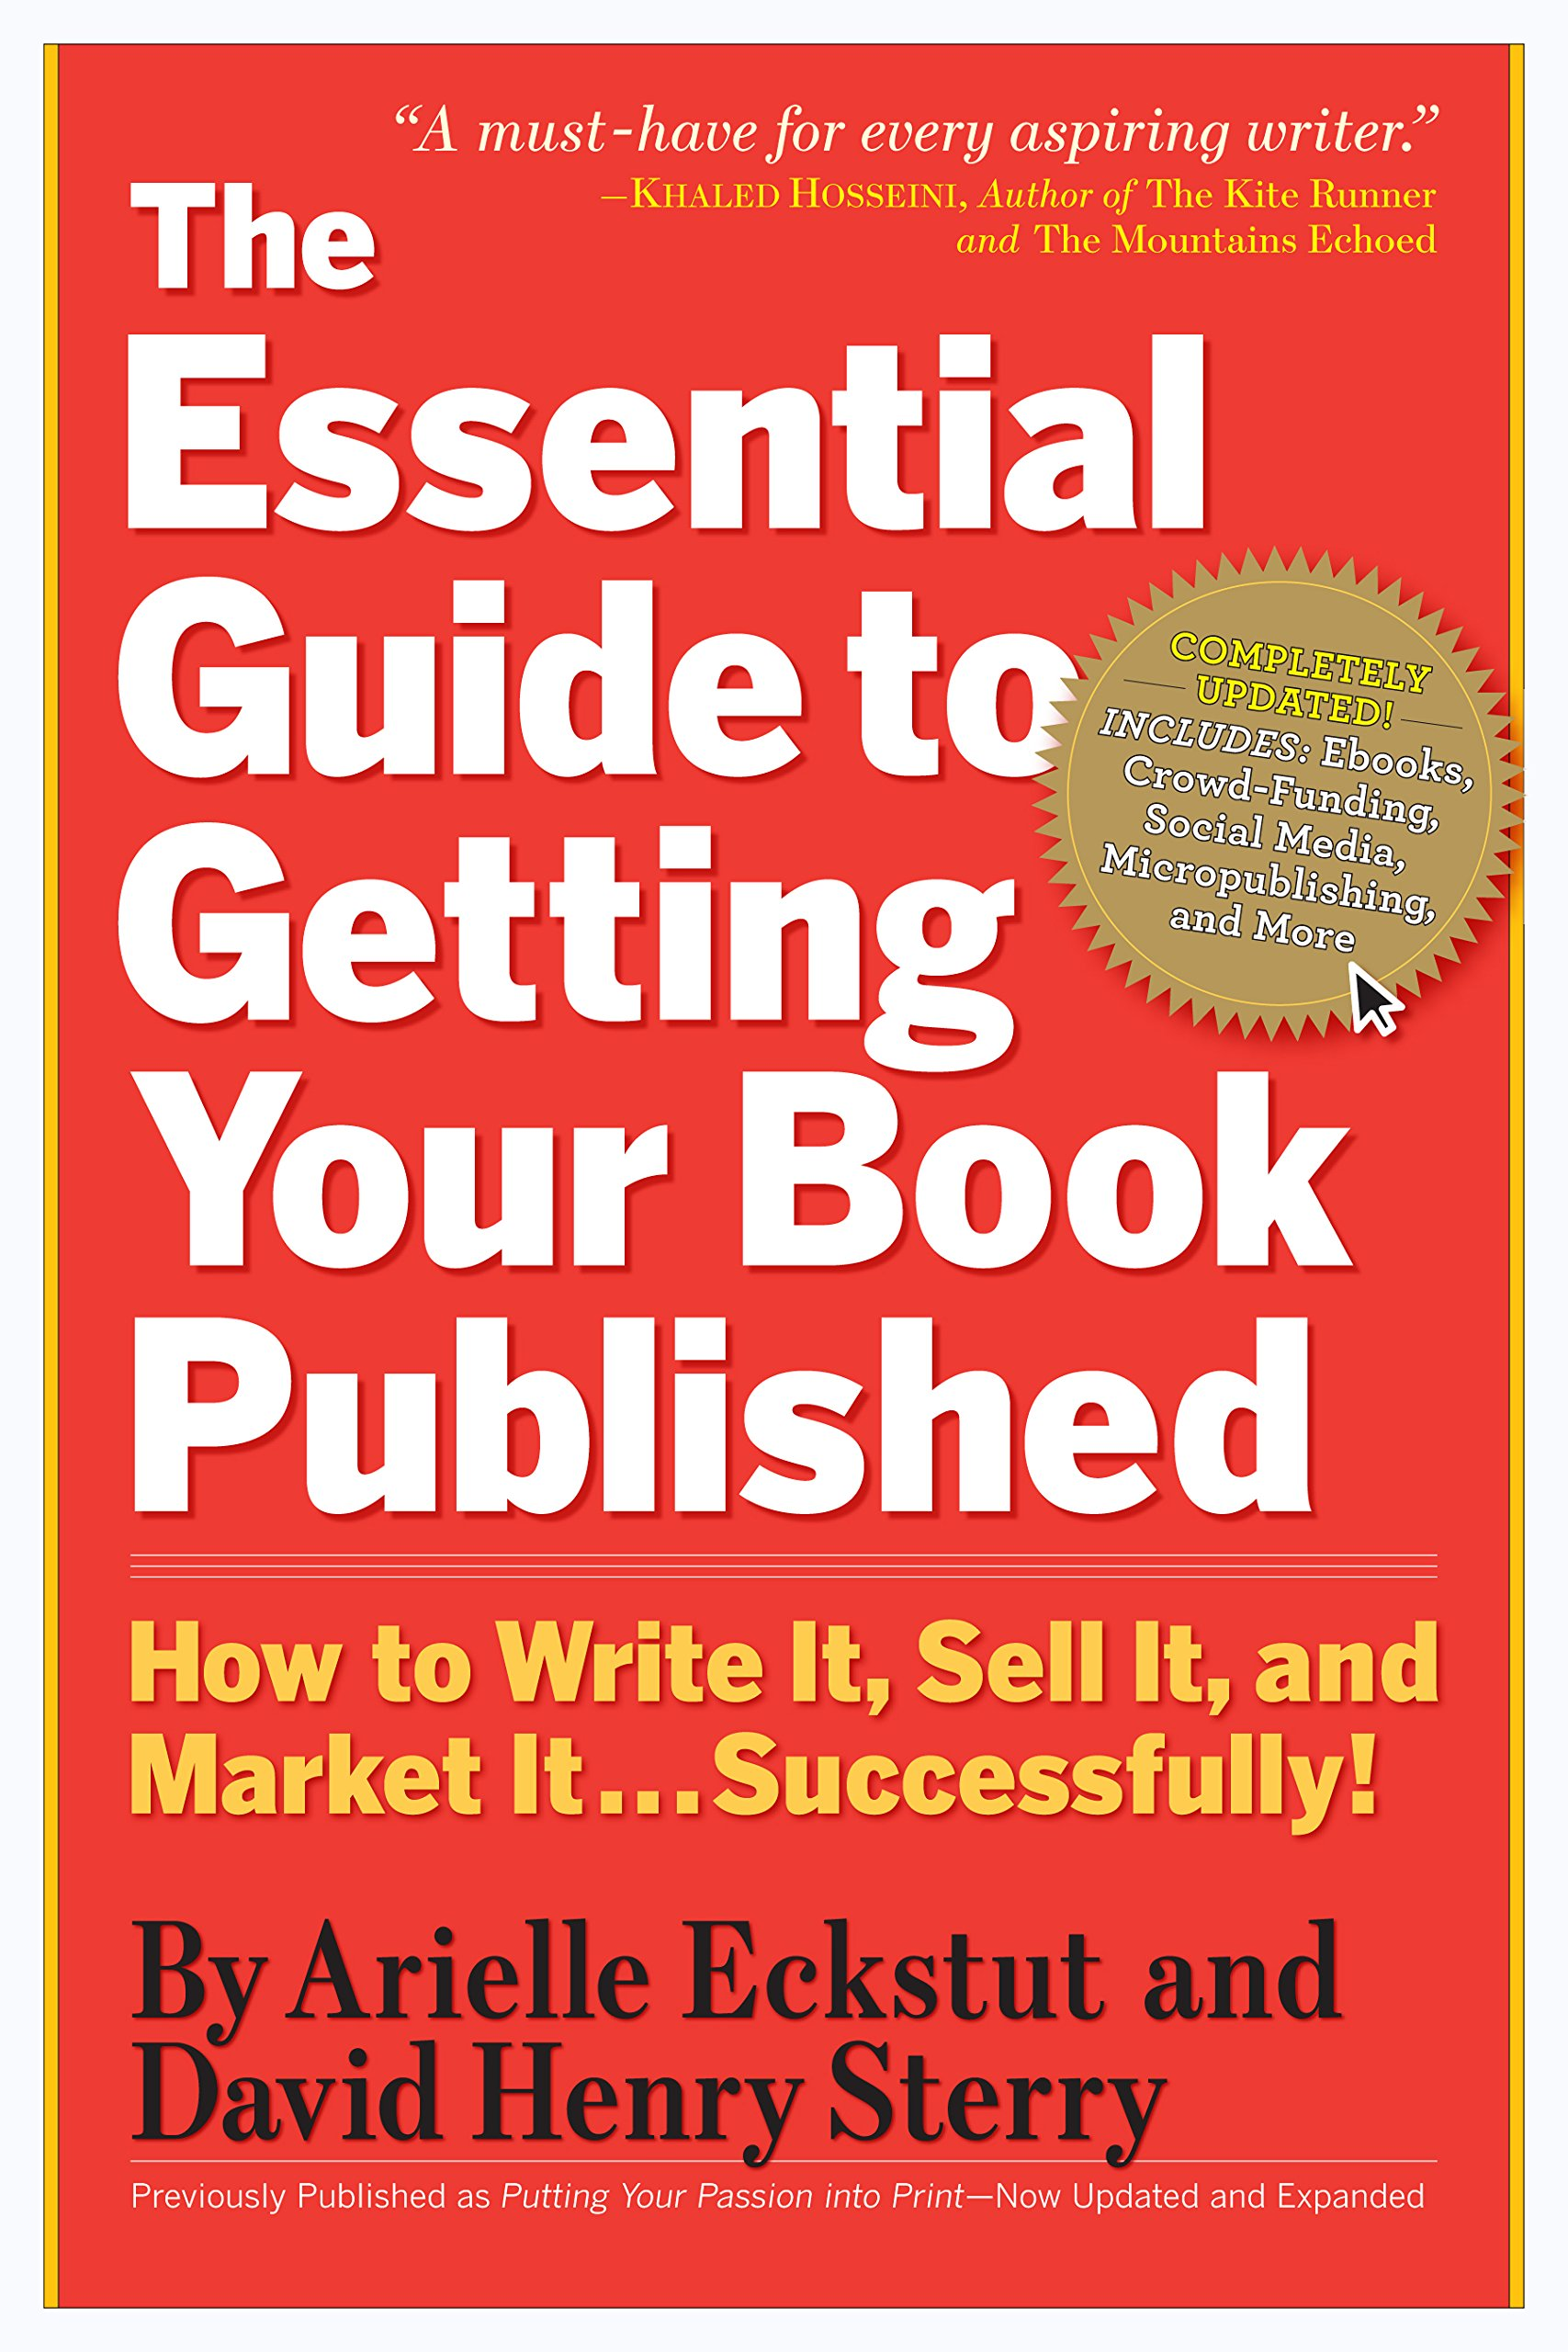 Essential Guide Getting Your Published product image